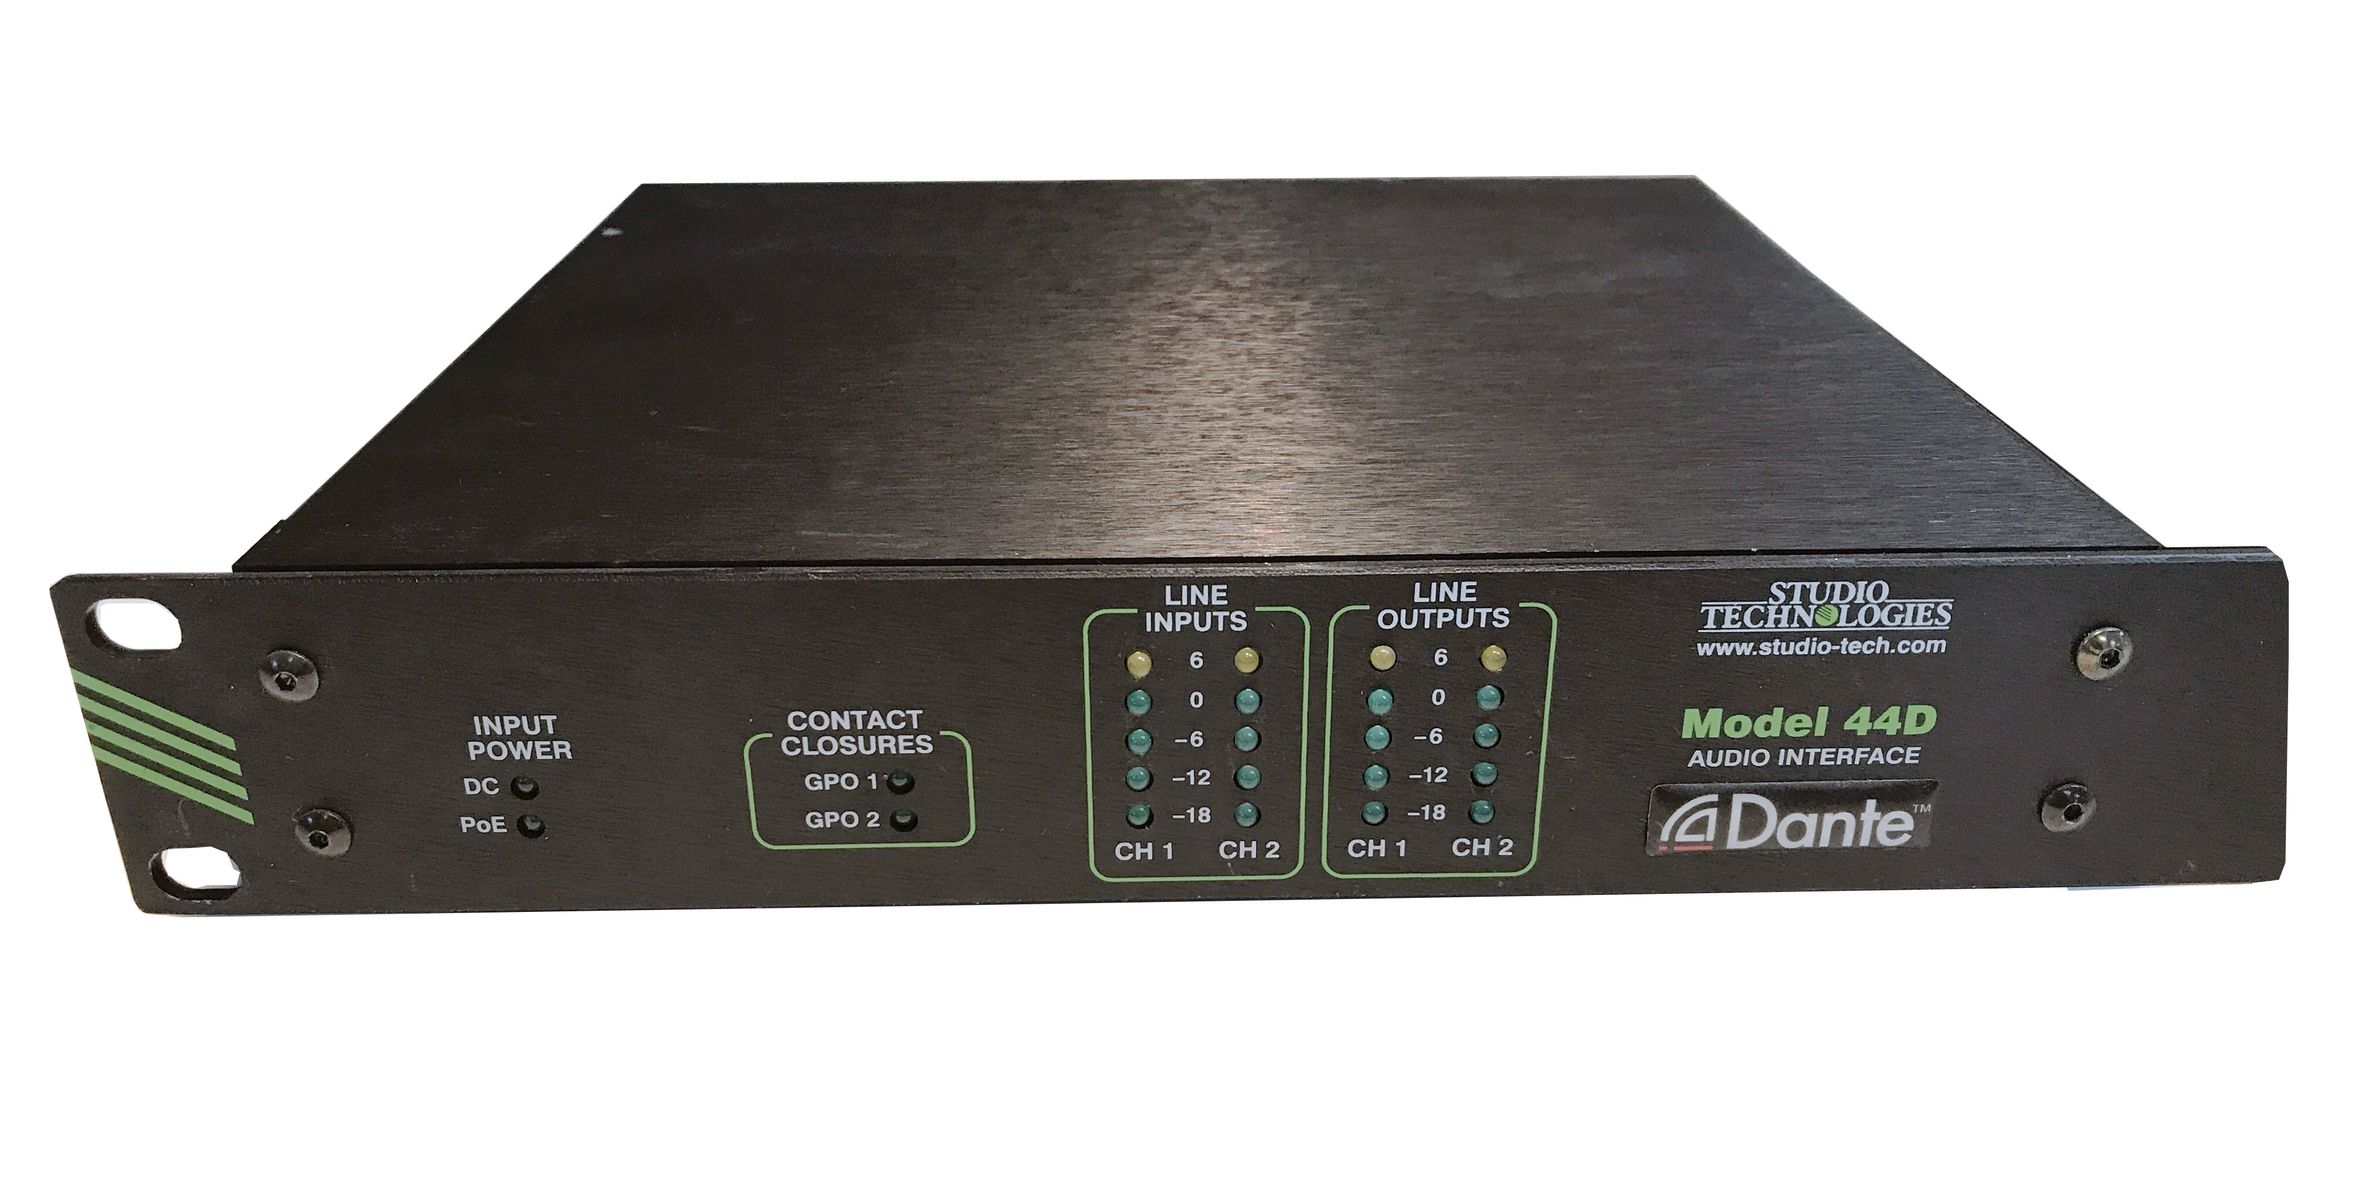 The Studio Technologies Model 44D Dante Interface is available at Hollywood Sound Systems